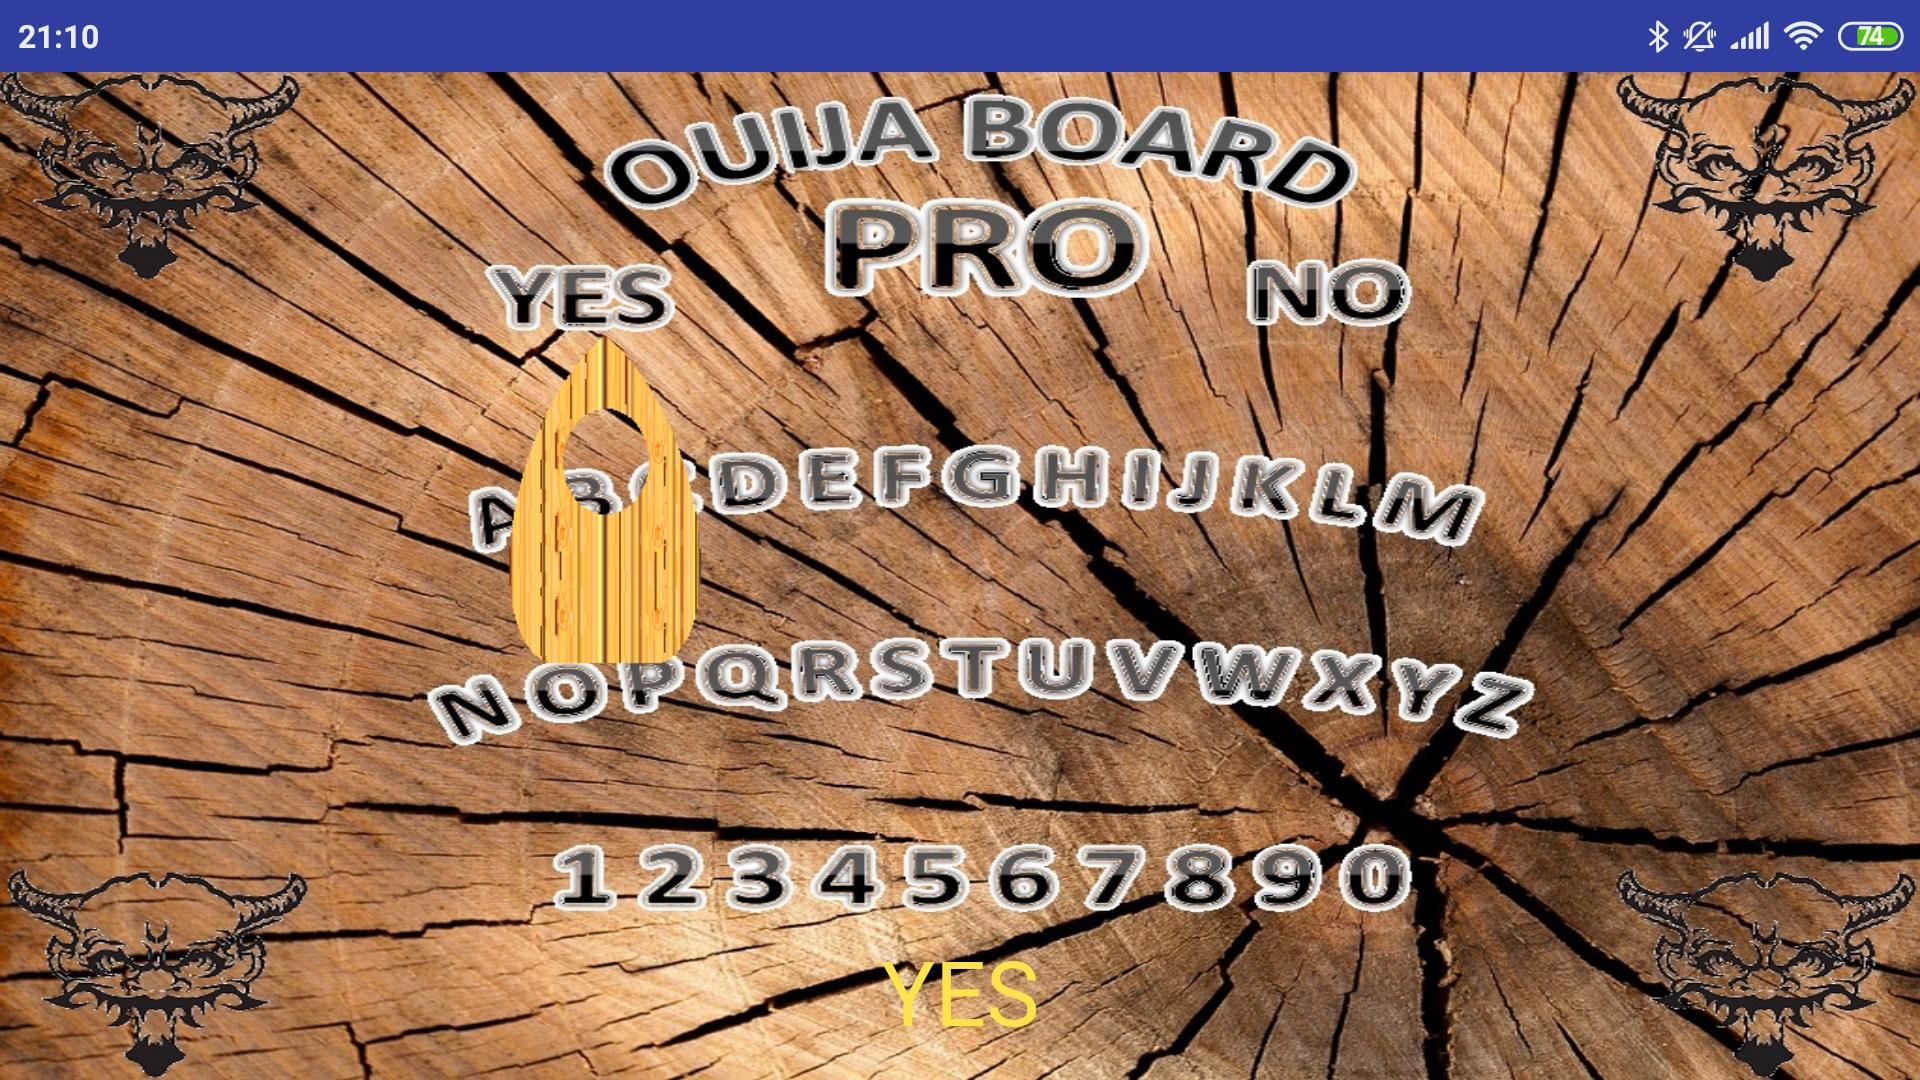 Ouija Board Pro for Android - APK Download